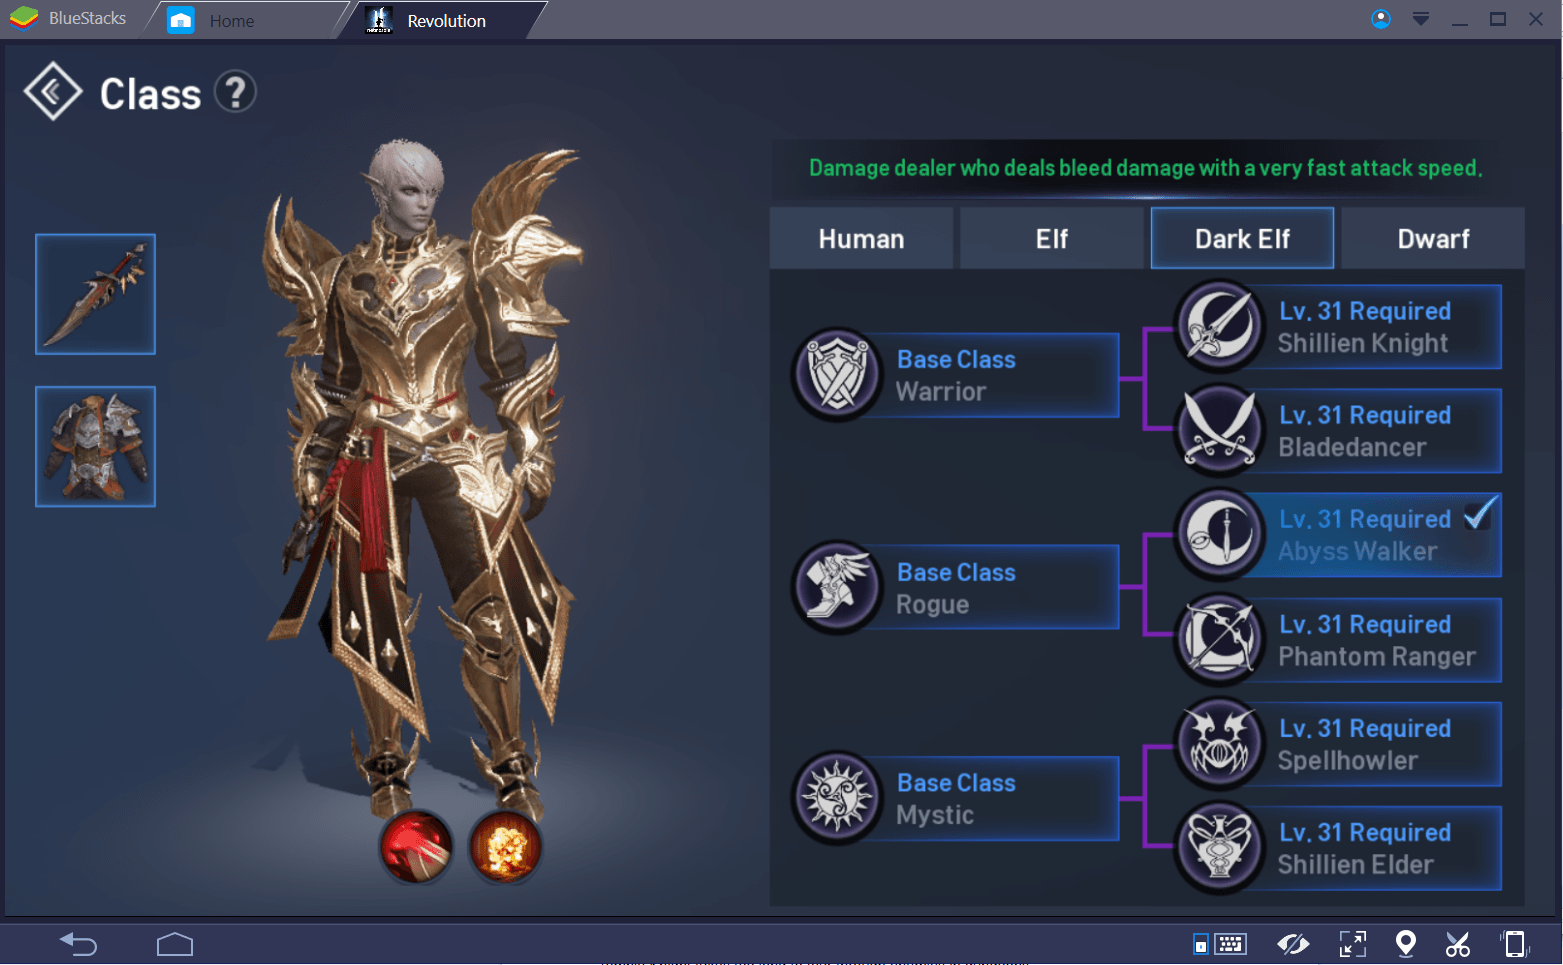 lineage 2 revolution grinding guide